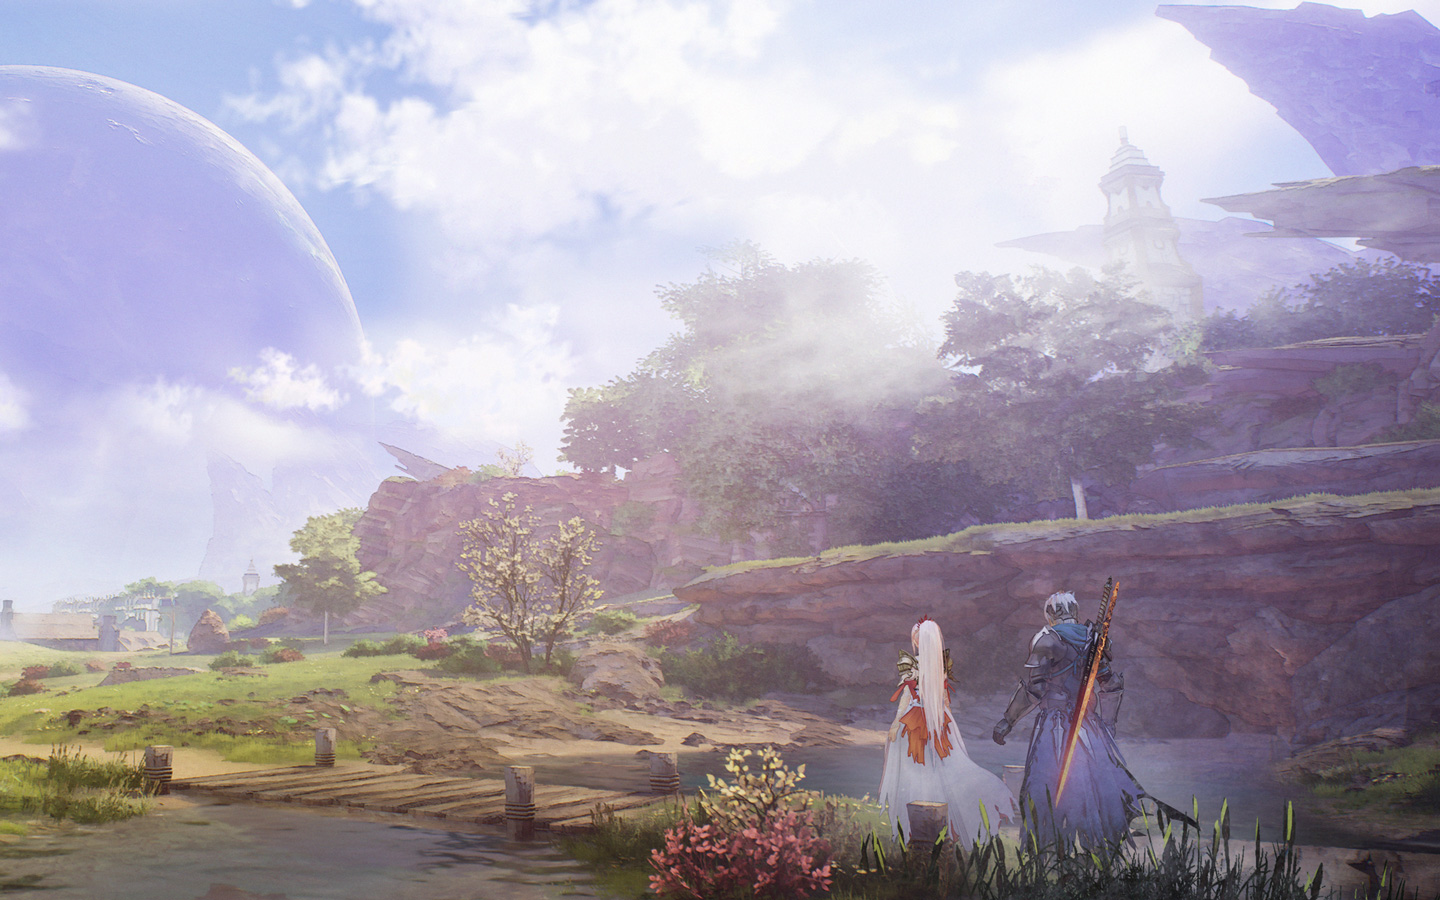 Tales of Arise Wallpaper in 1440x900